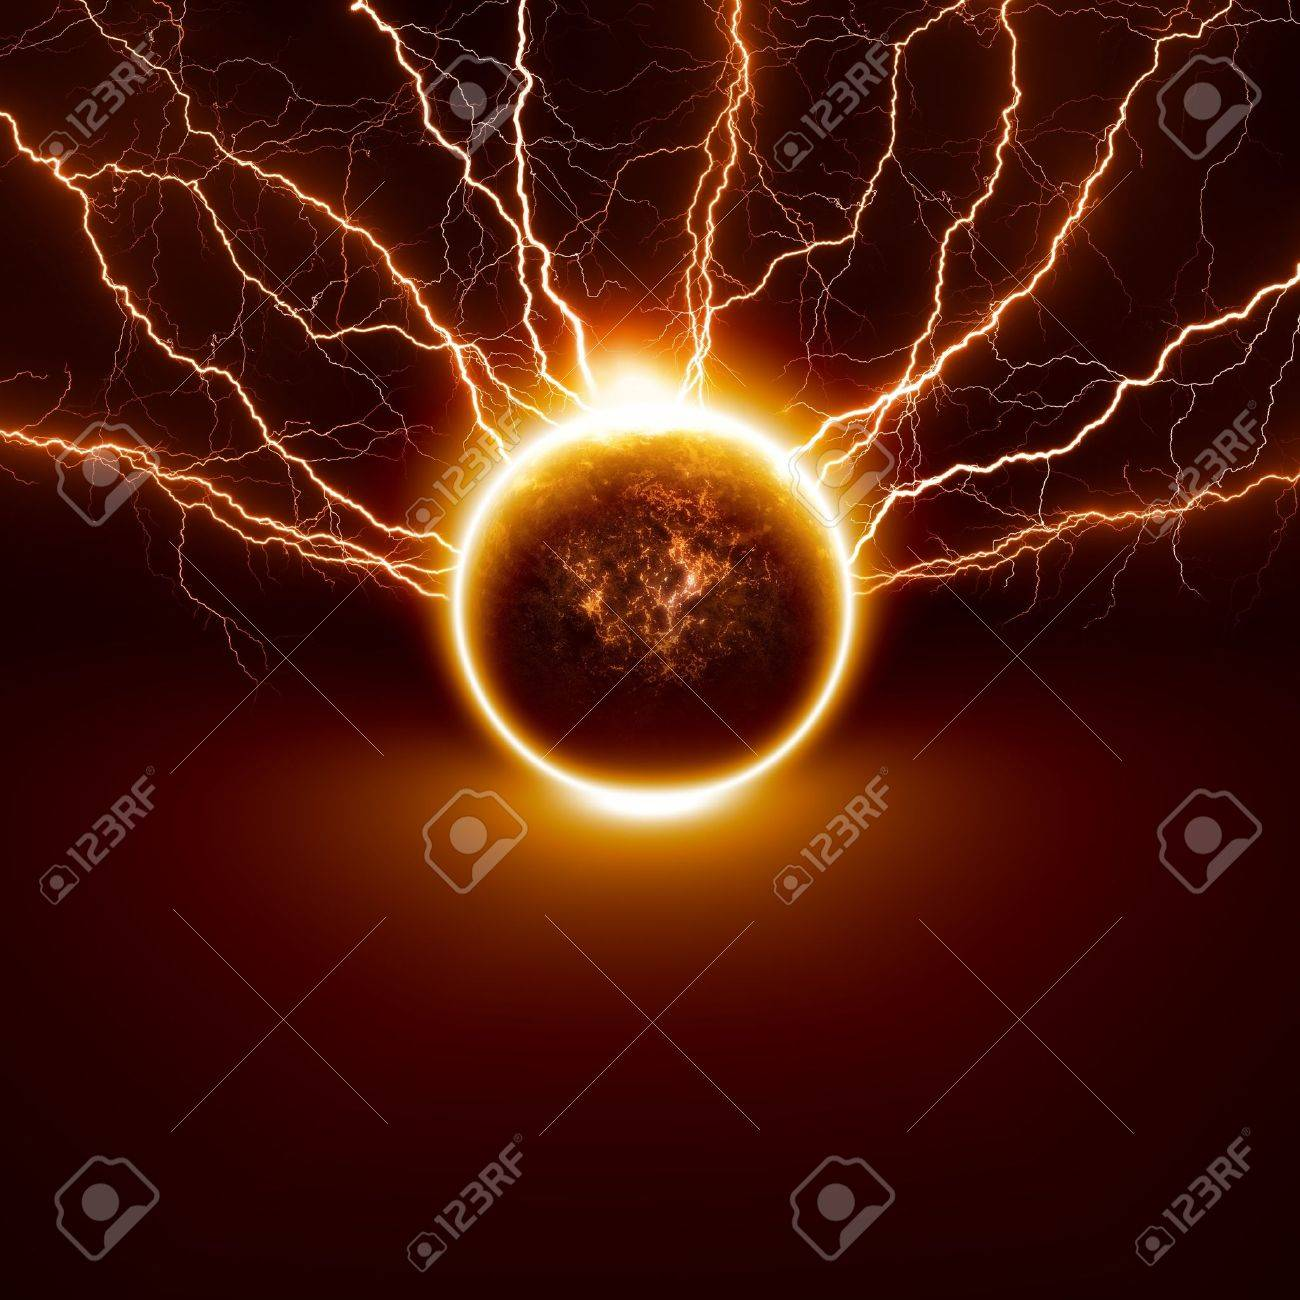 Scientific background - planet Earth in danger, struck by big lightnings Elements of this image furnished by NASA - 14887104